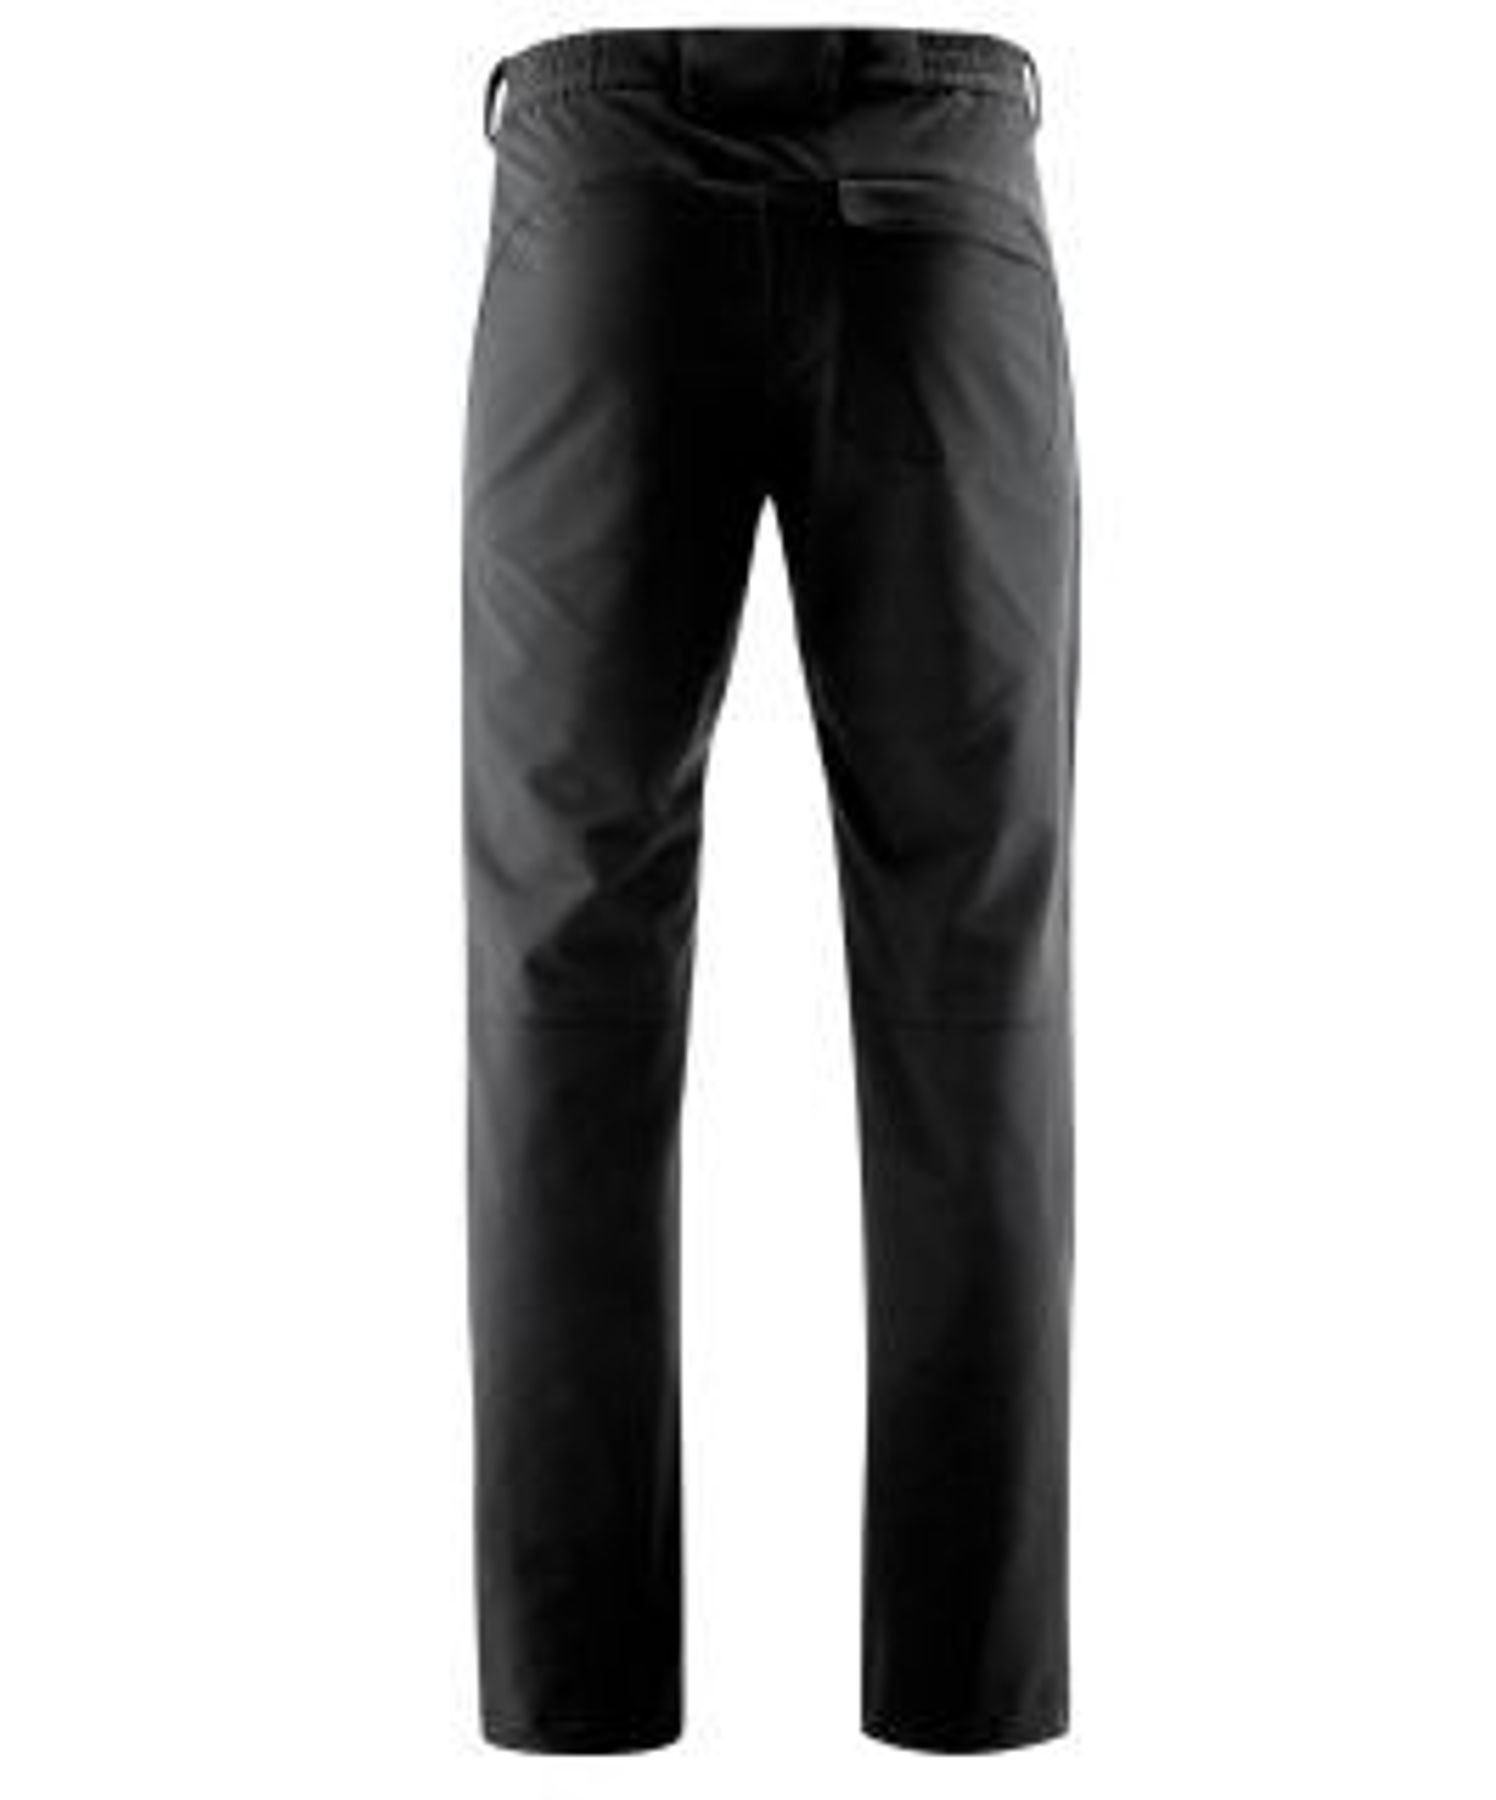 Maier Sports - Warme Herren Outdoor - und Funktions Hose in Black Artikel Herrmann (136005) – Bild 4